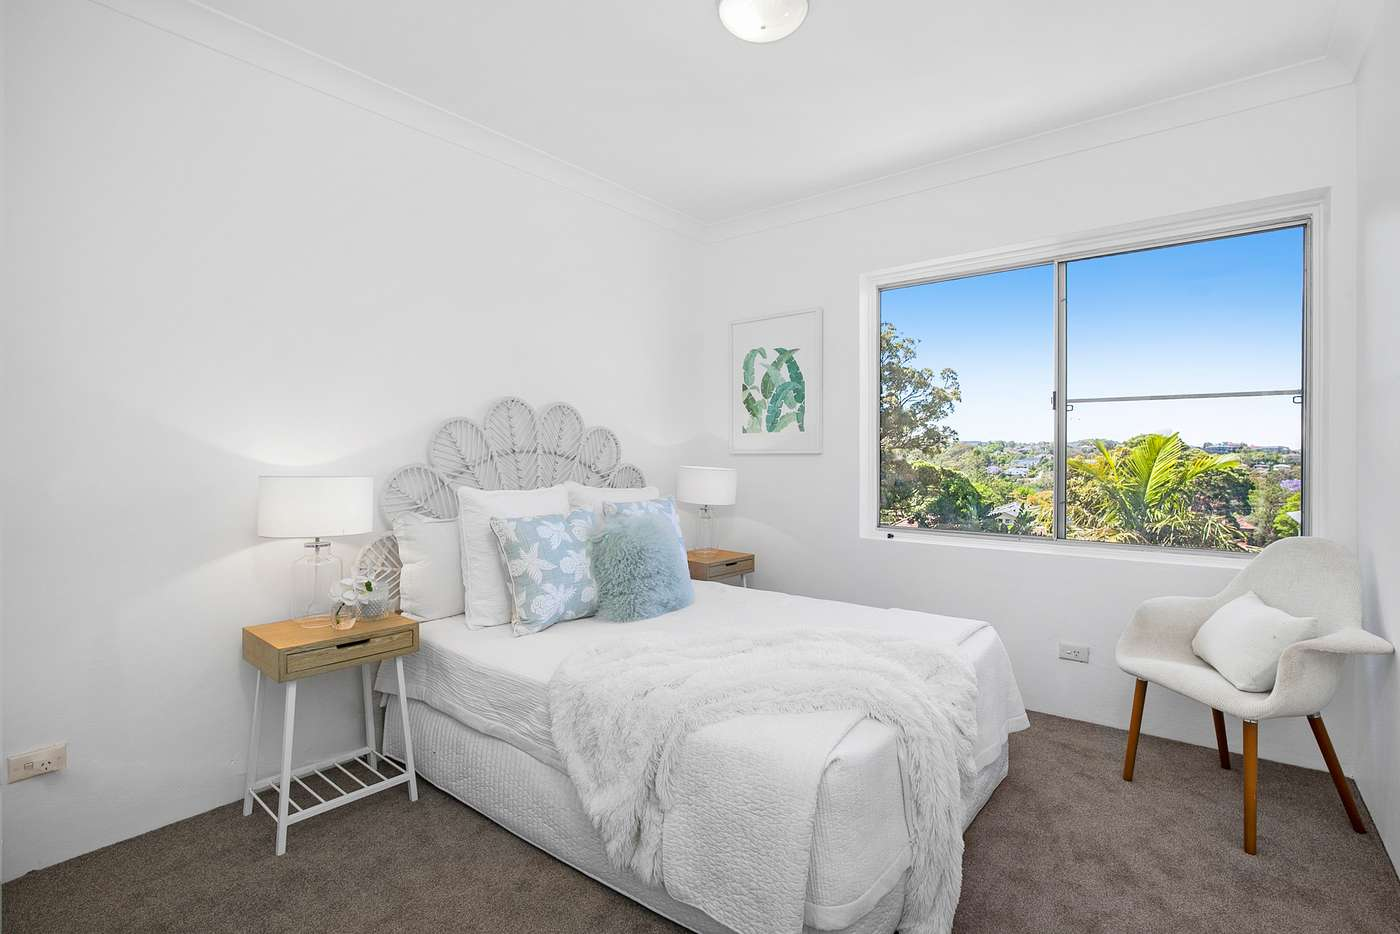 Sixth view of Homely apartment listing, 11/14-18 Angle Street, Balgowlah NSW 2093